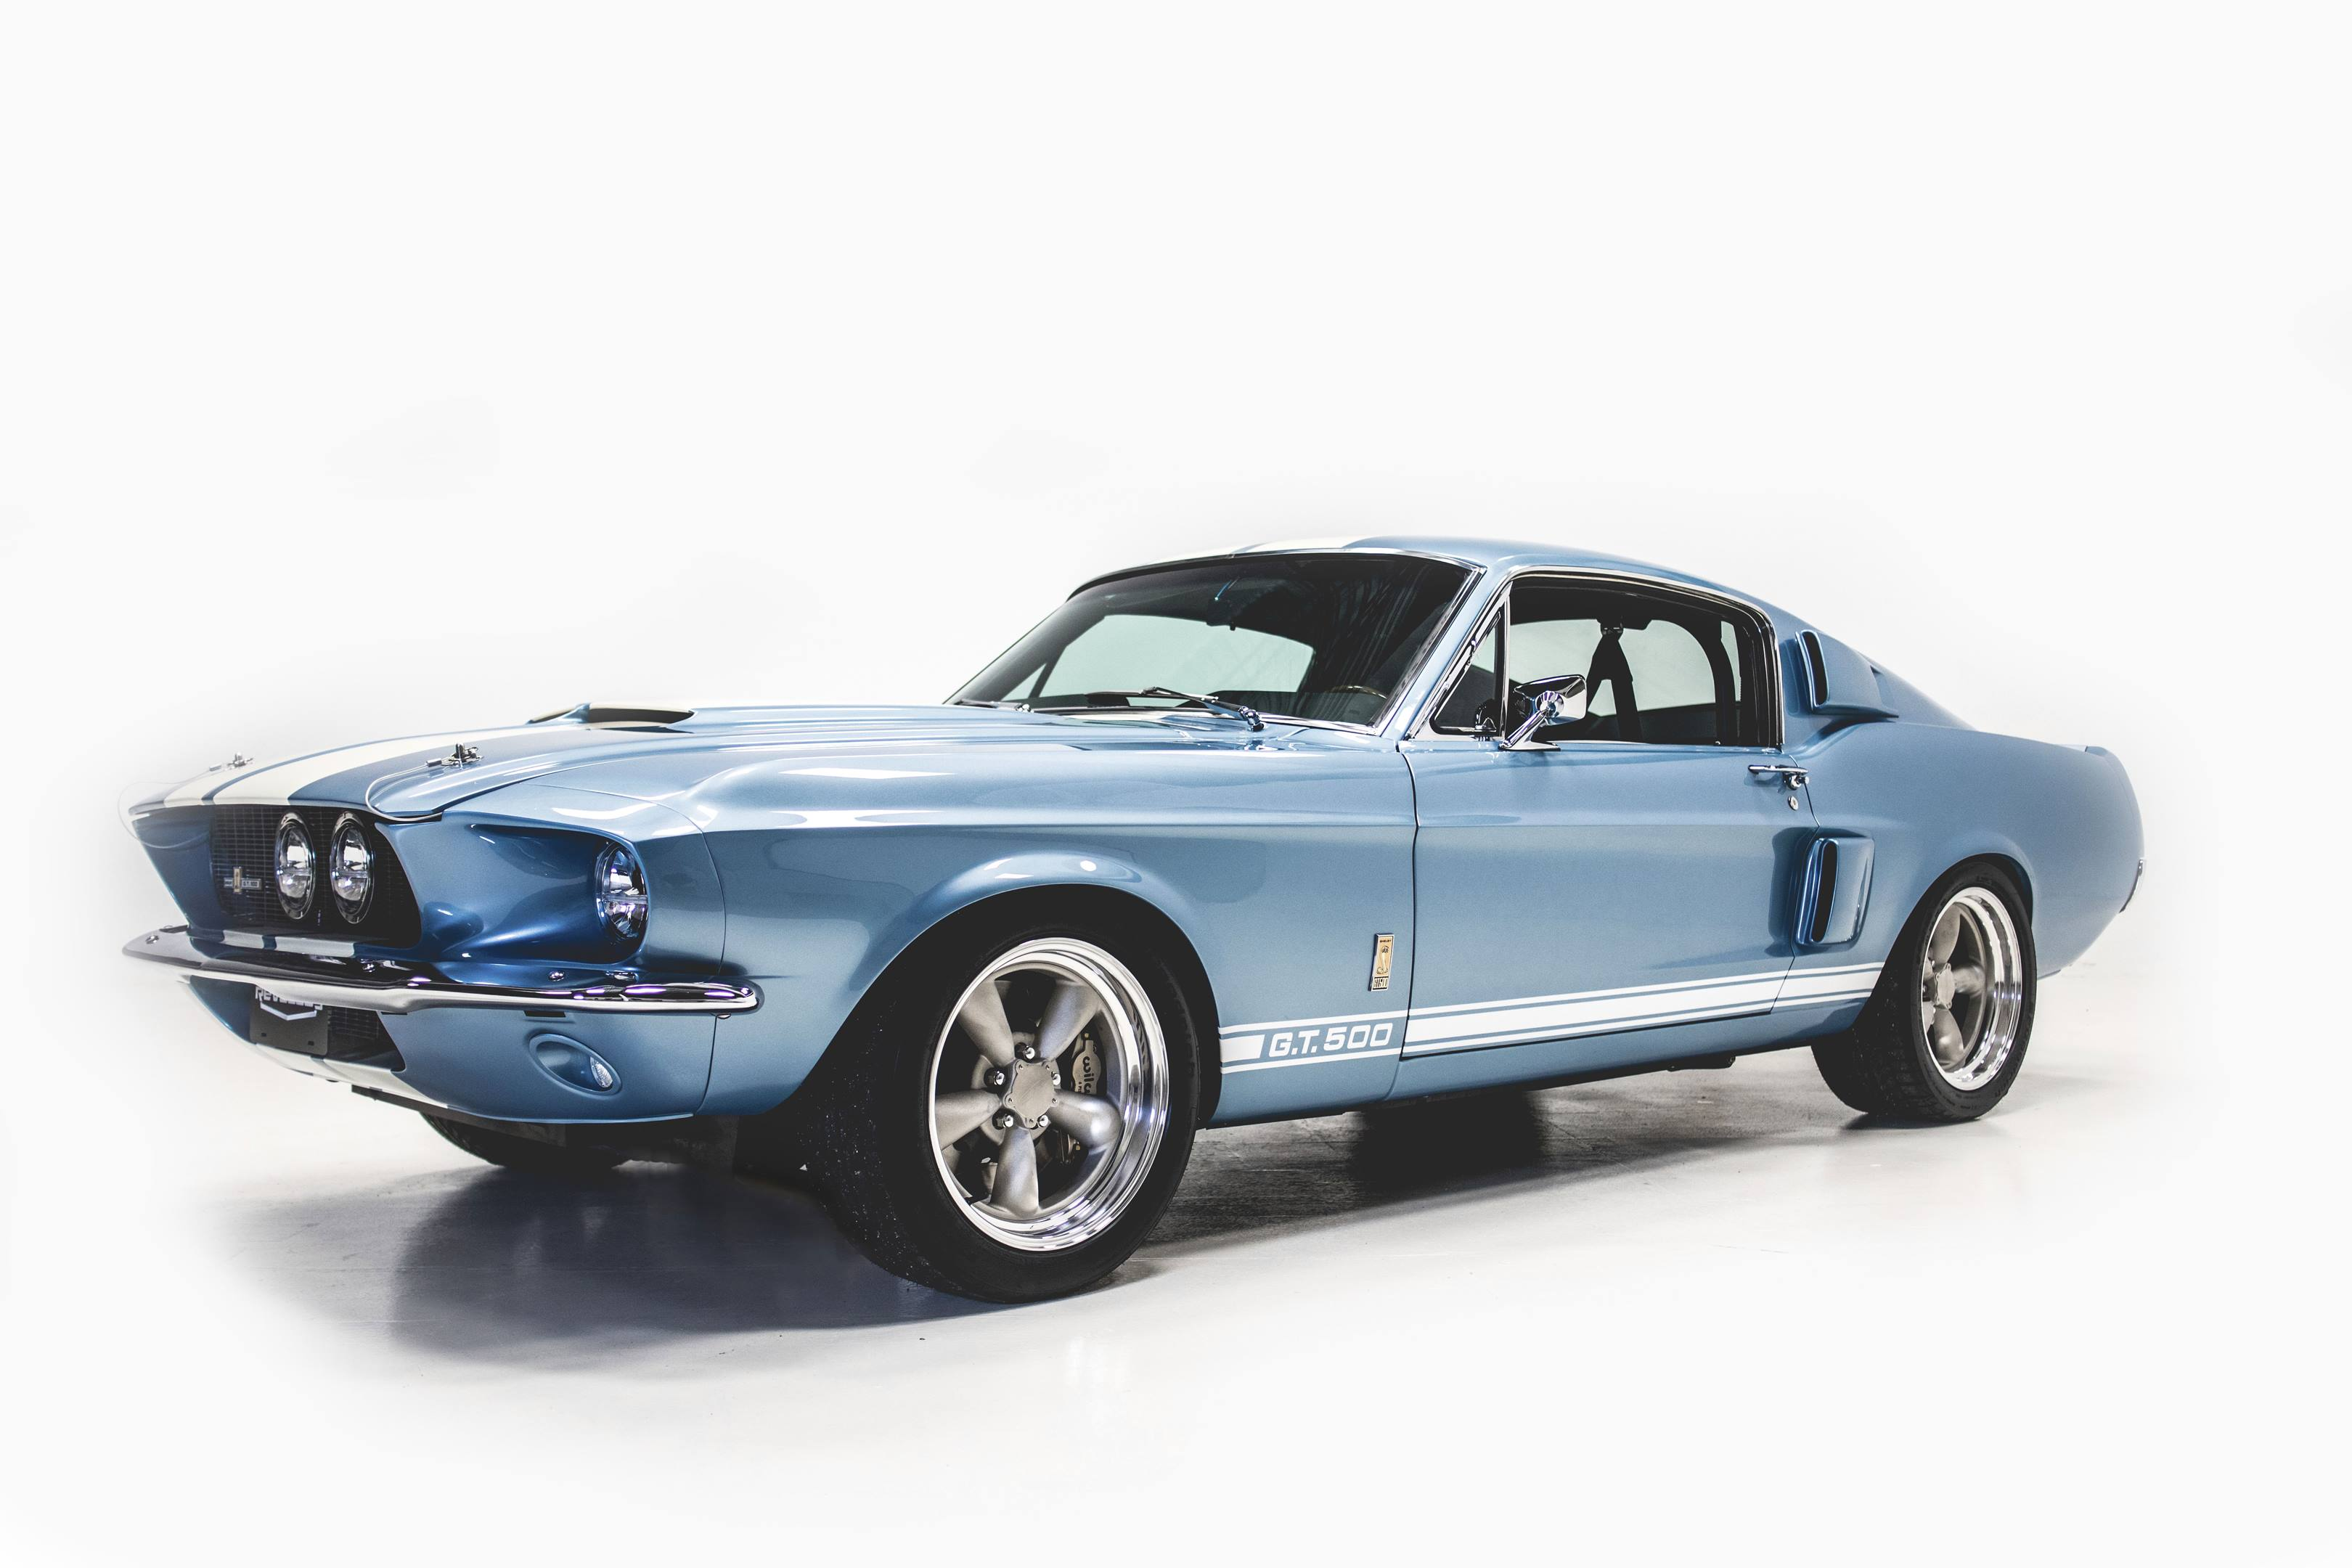 Revology Shelby GT350 front 3/4